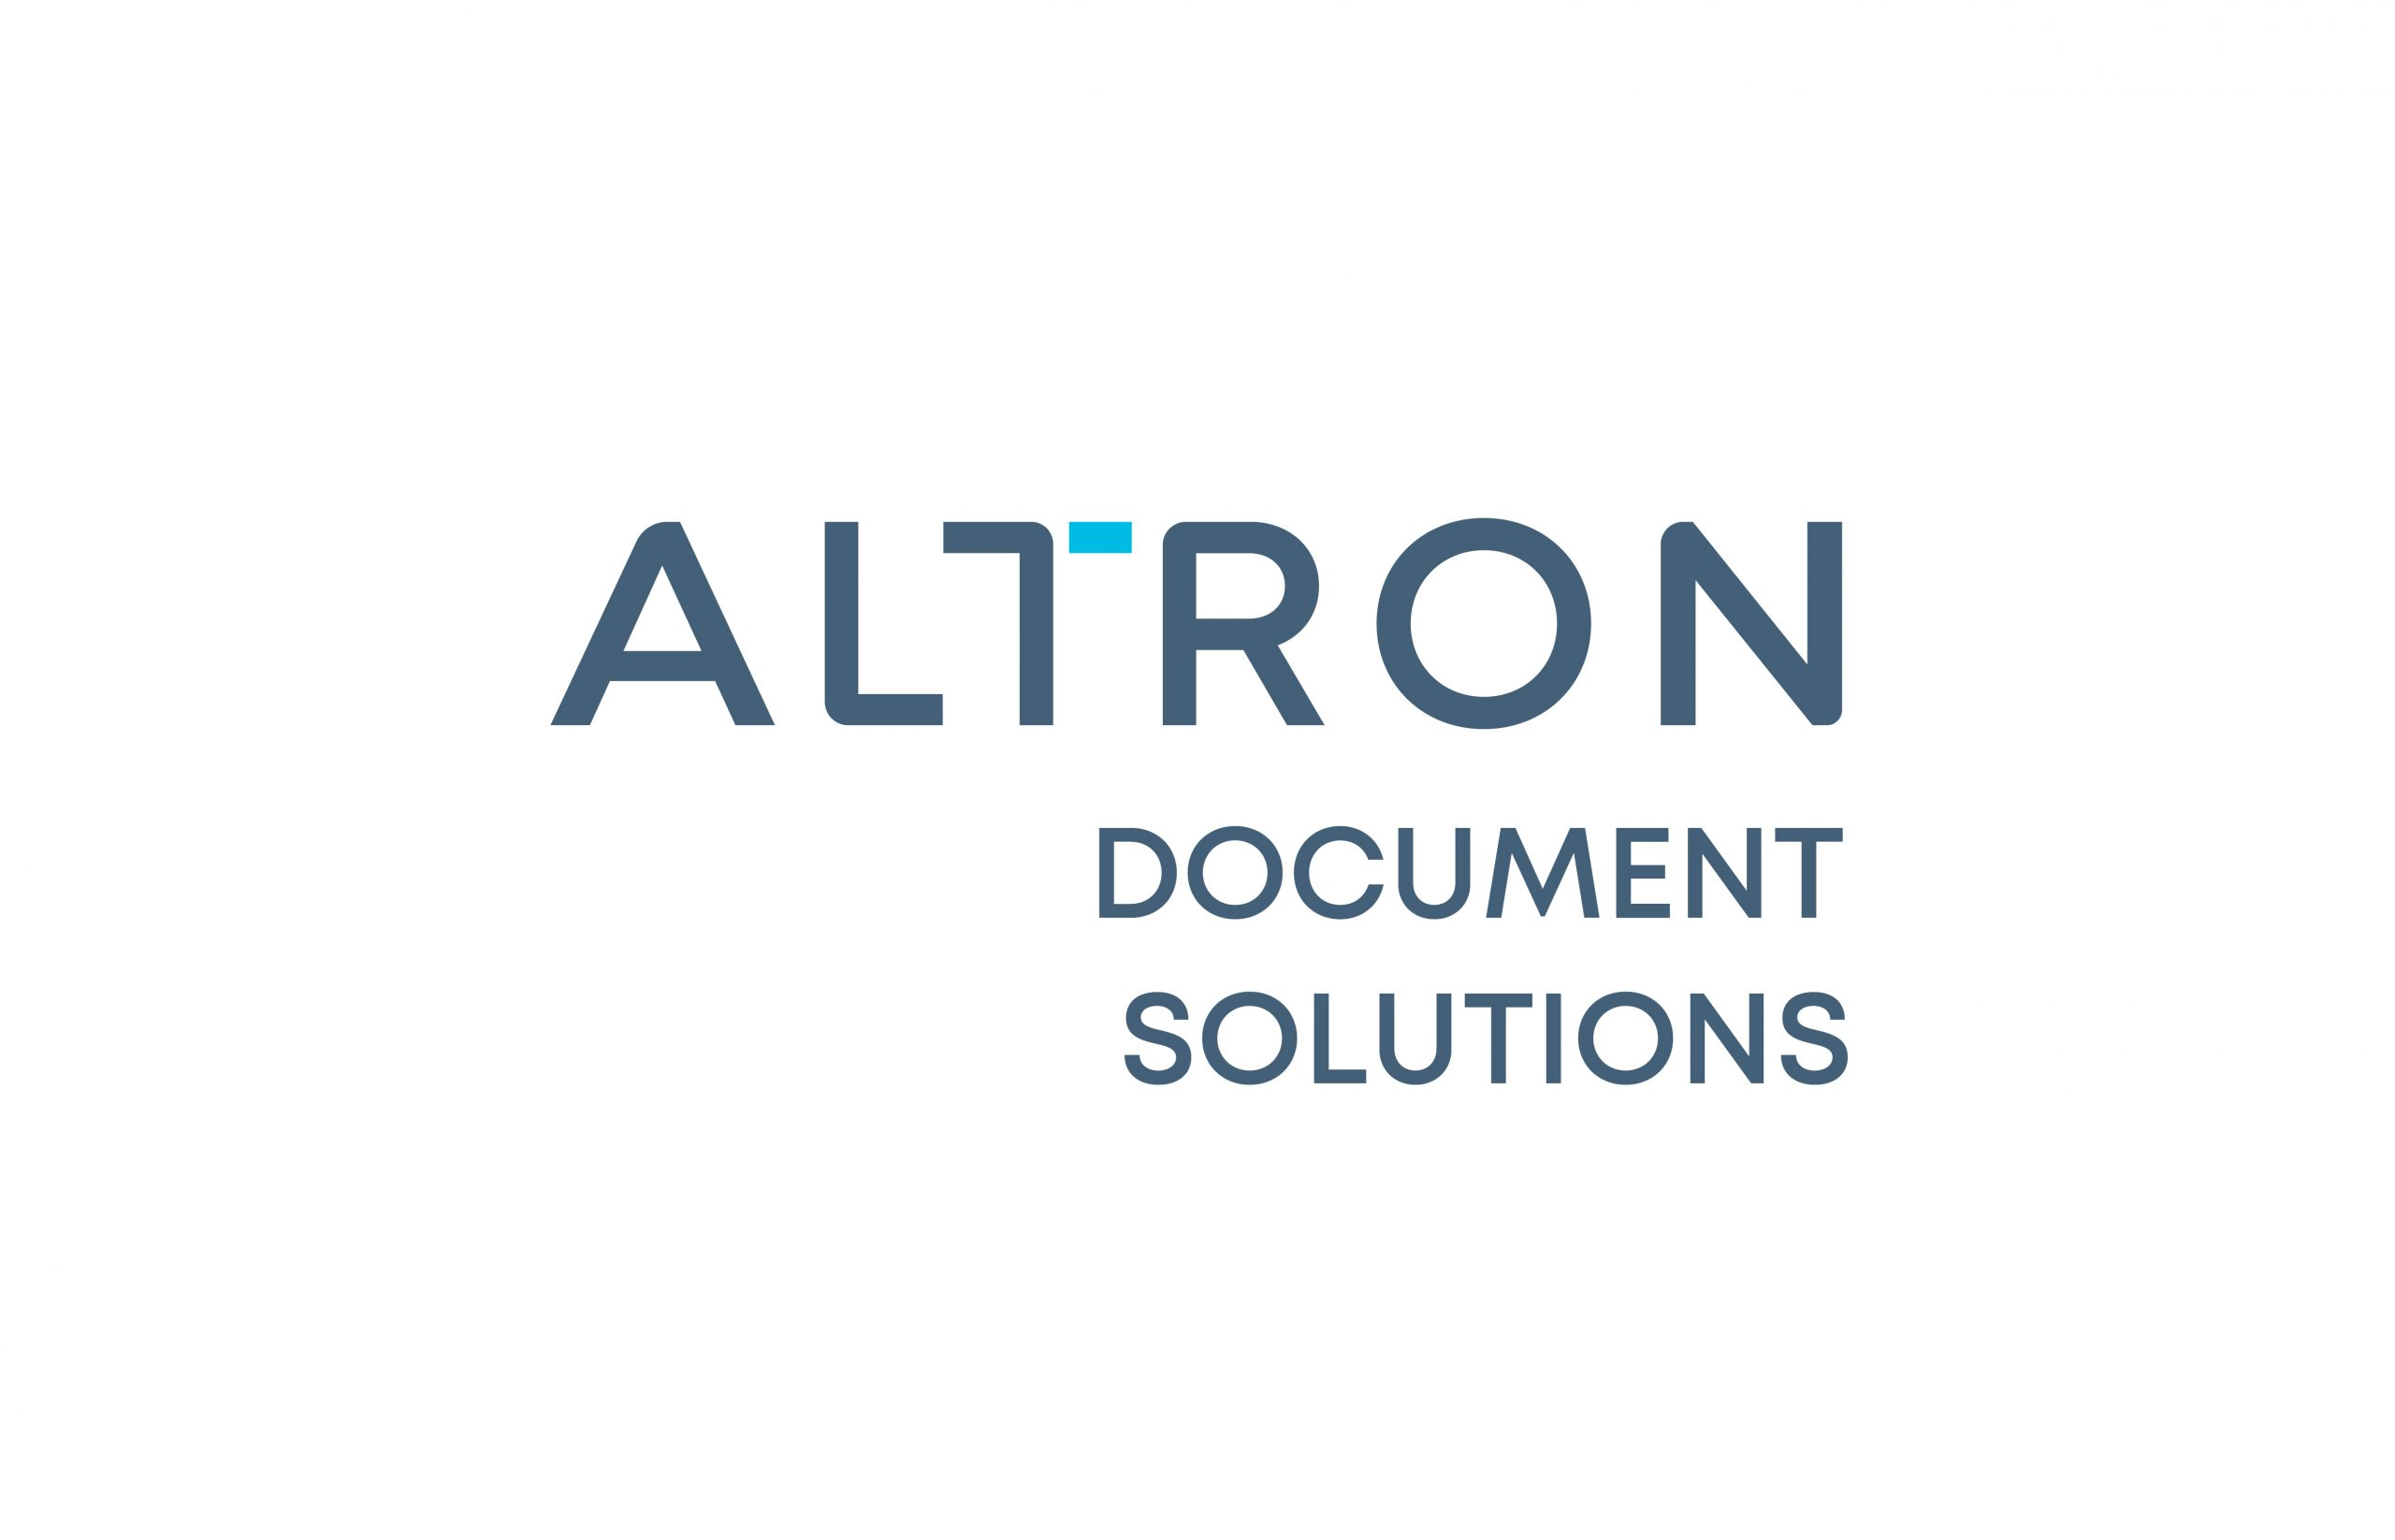 Altron Document Solutions disrupts legacy model as businesses digitise